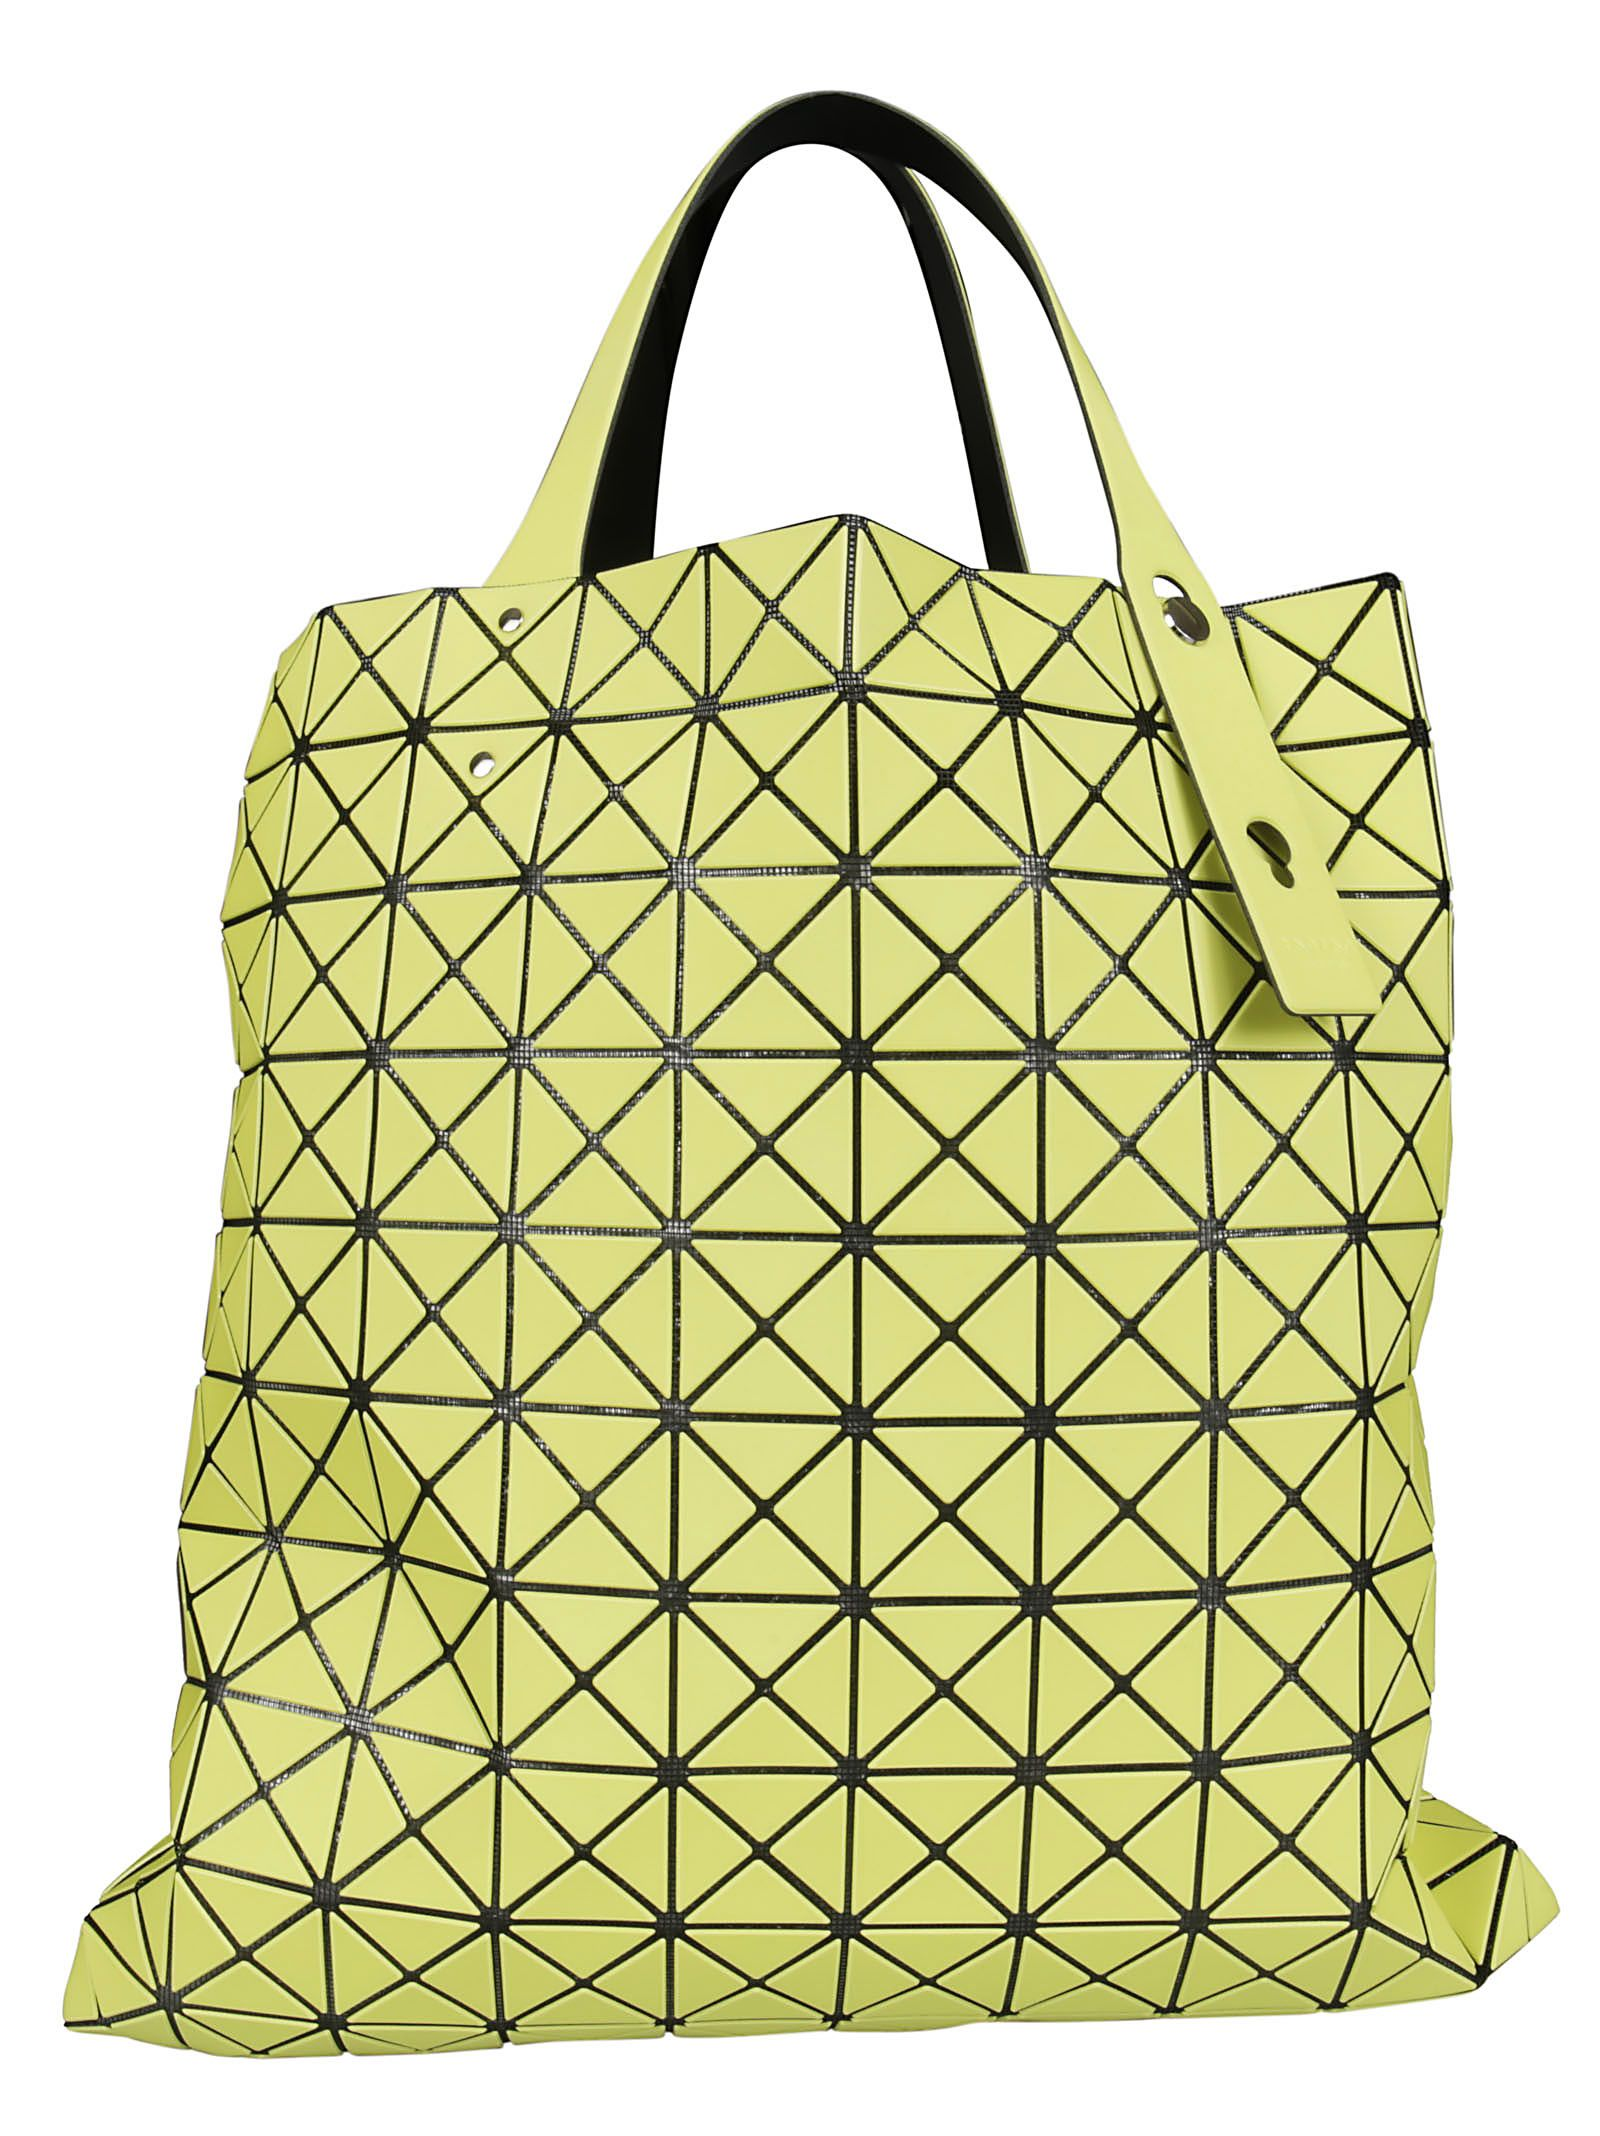 Bao Bao Issey Miyake Bao Bao Issey Miyake Large Prism Tote - Basic ... 15737746f2df1